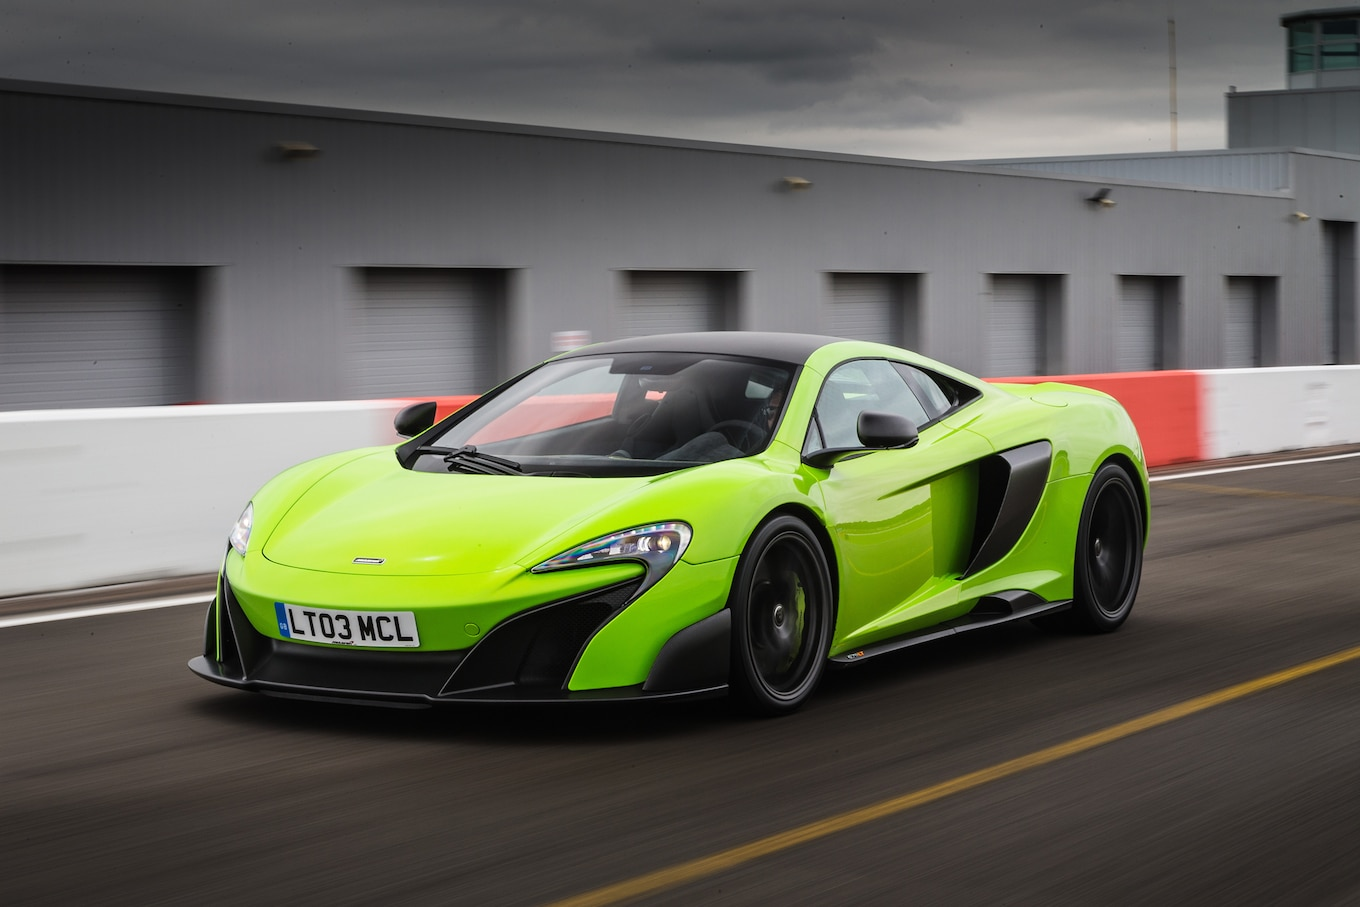 Fastest Car In The World Wallpaper 2016 Mclaren 675lt Reviews And Rating Motor Trend